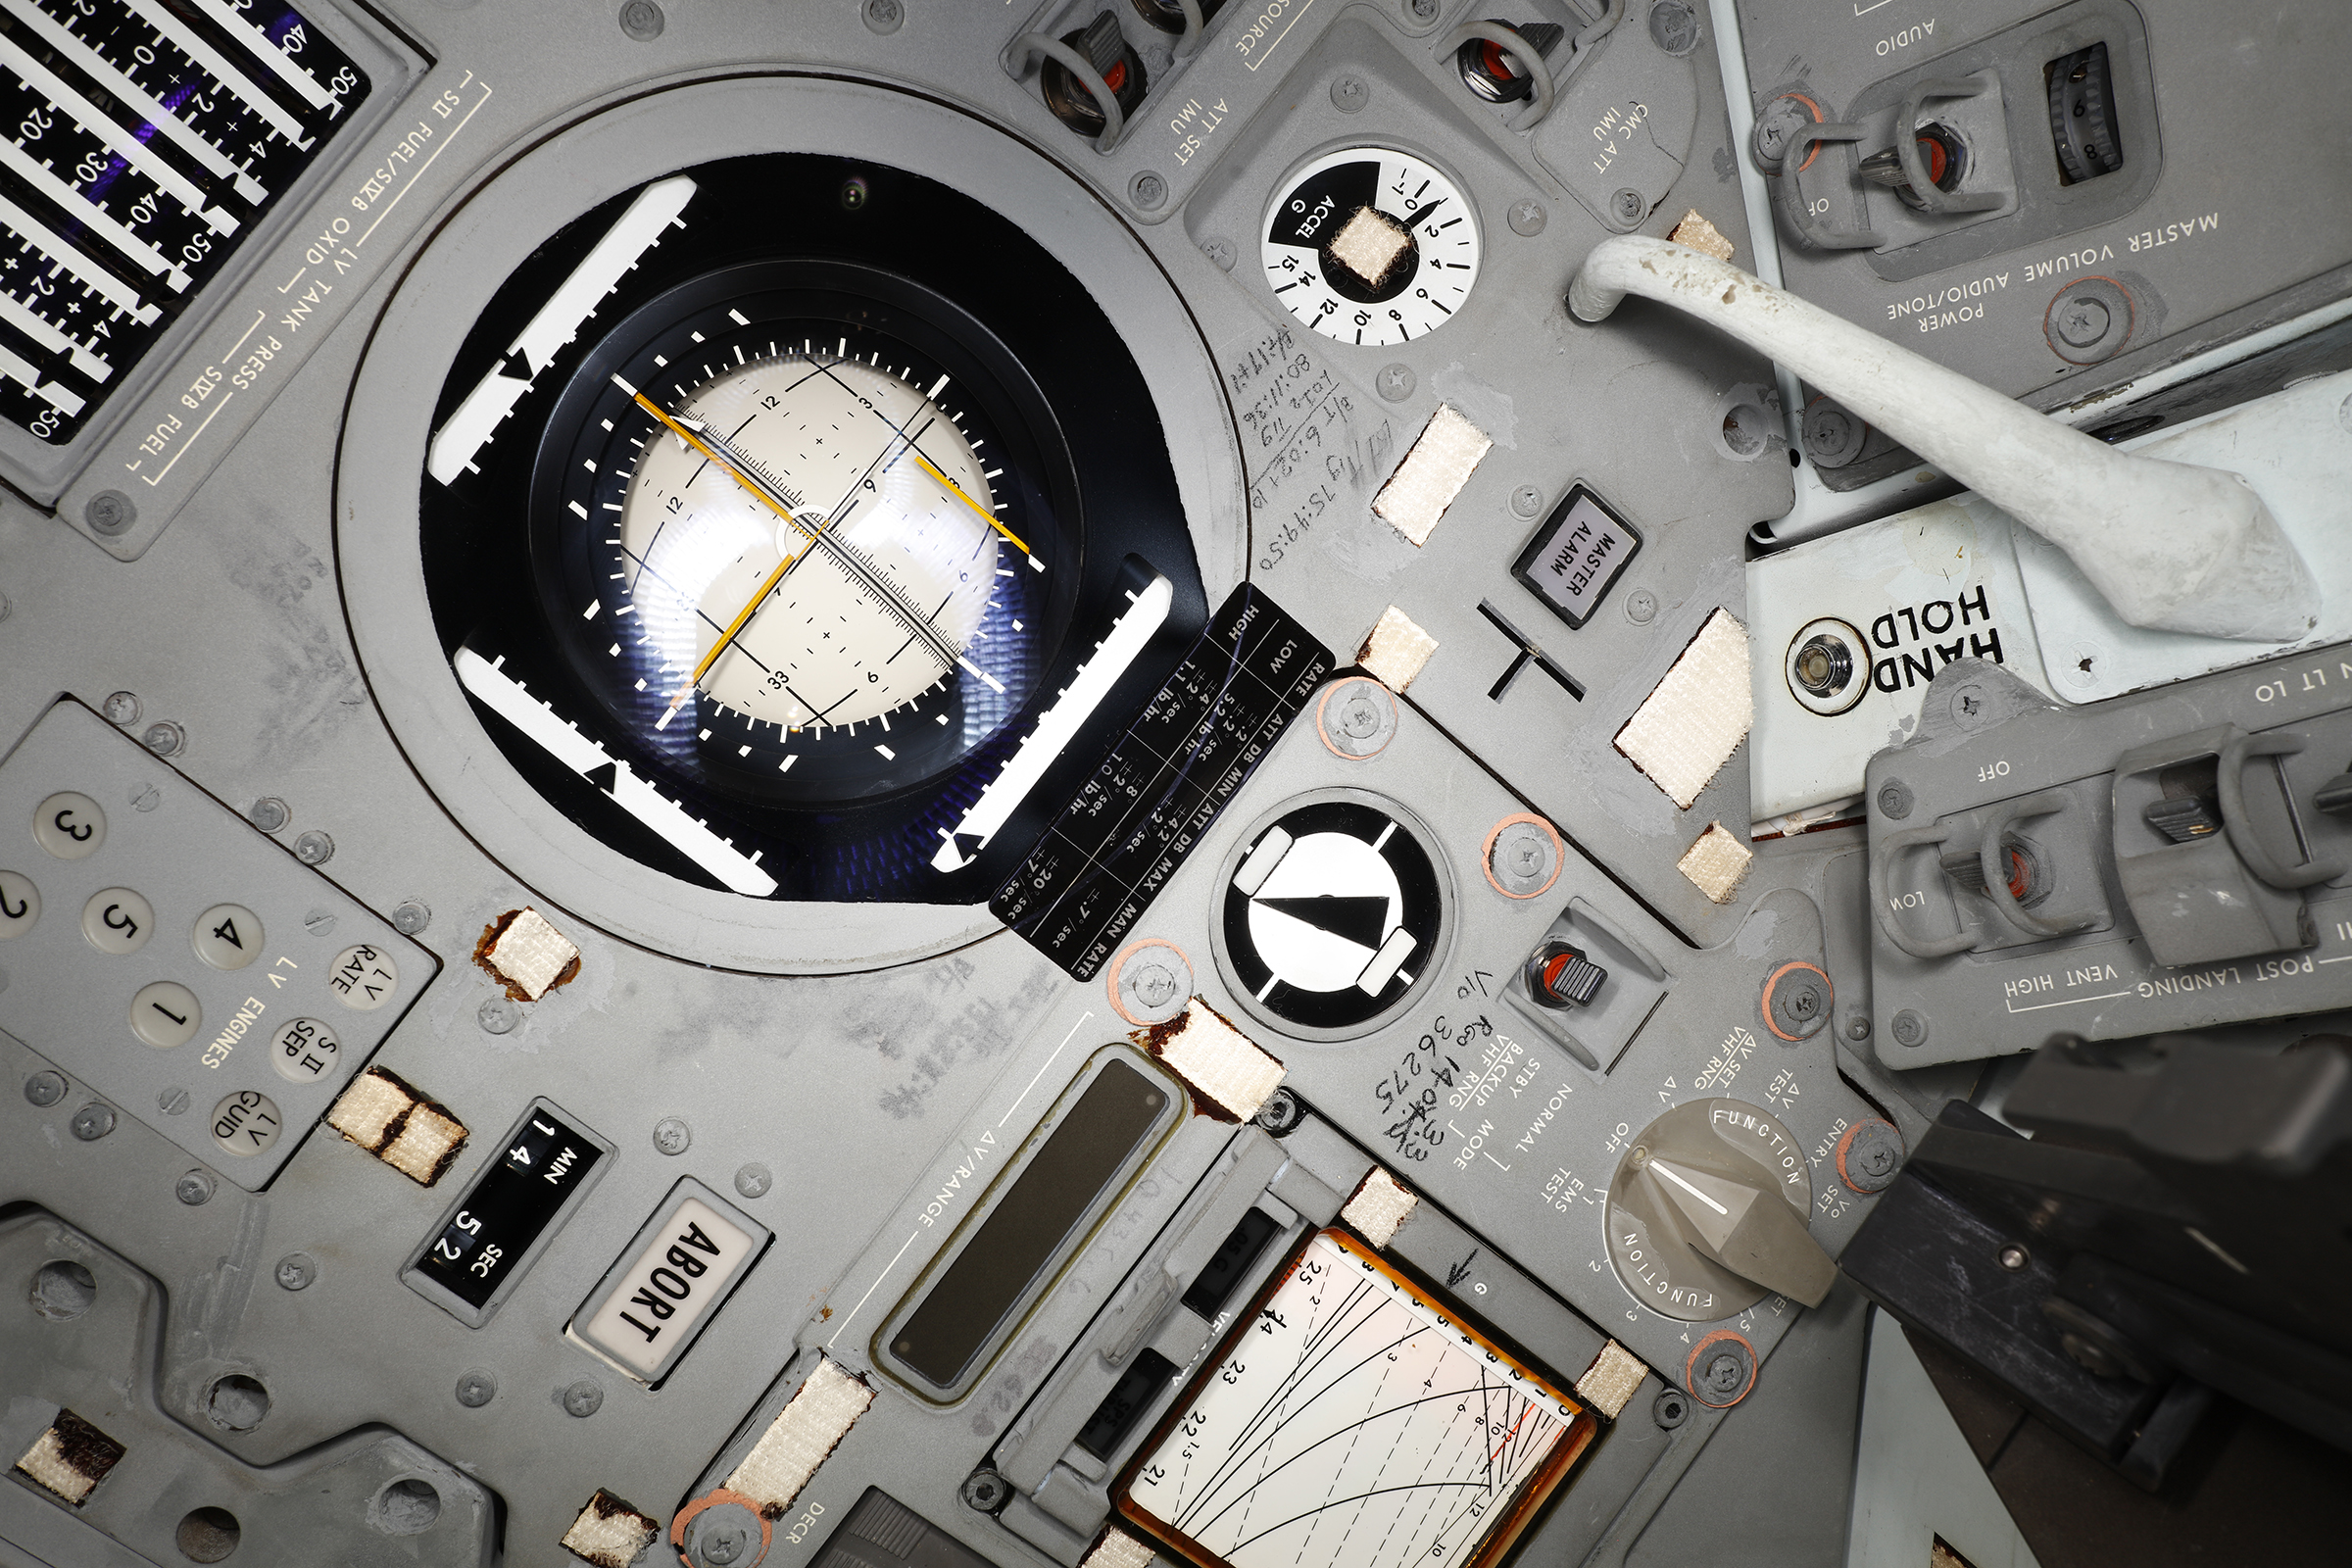 How To Make An Astronaut Craft